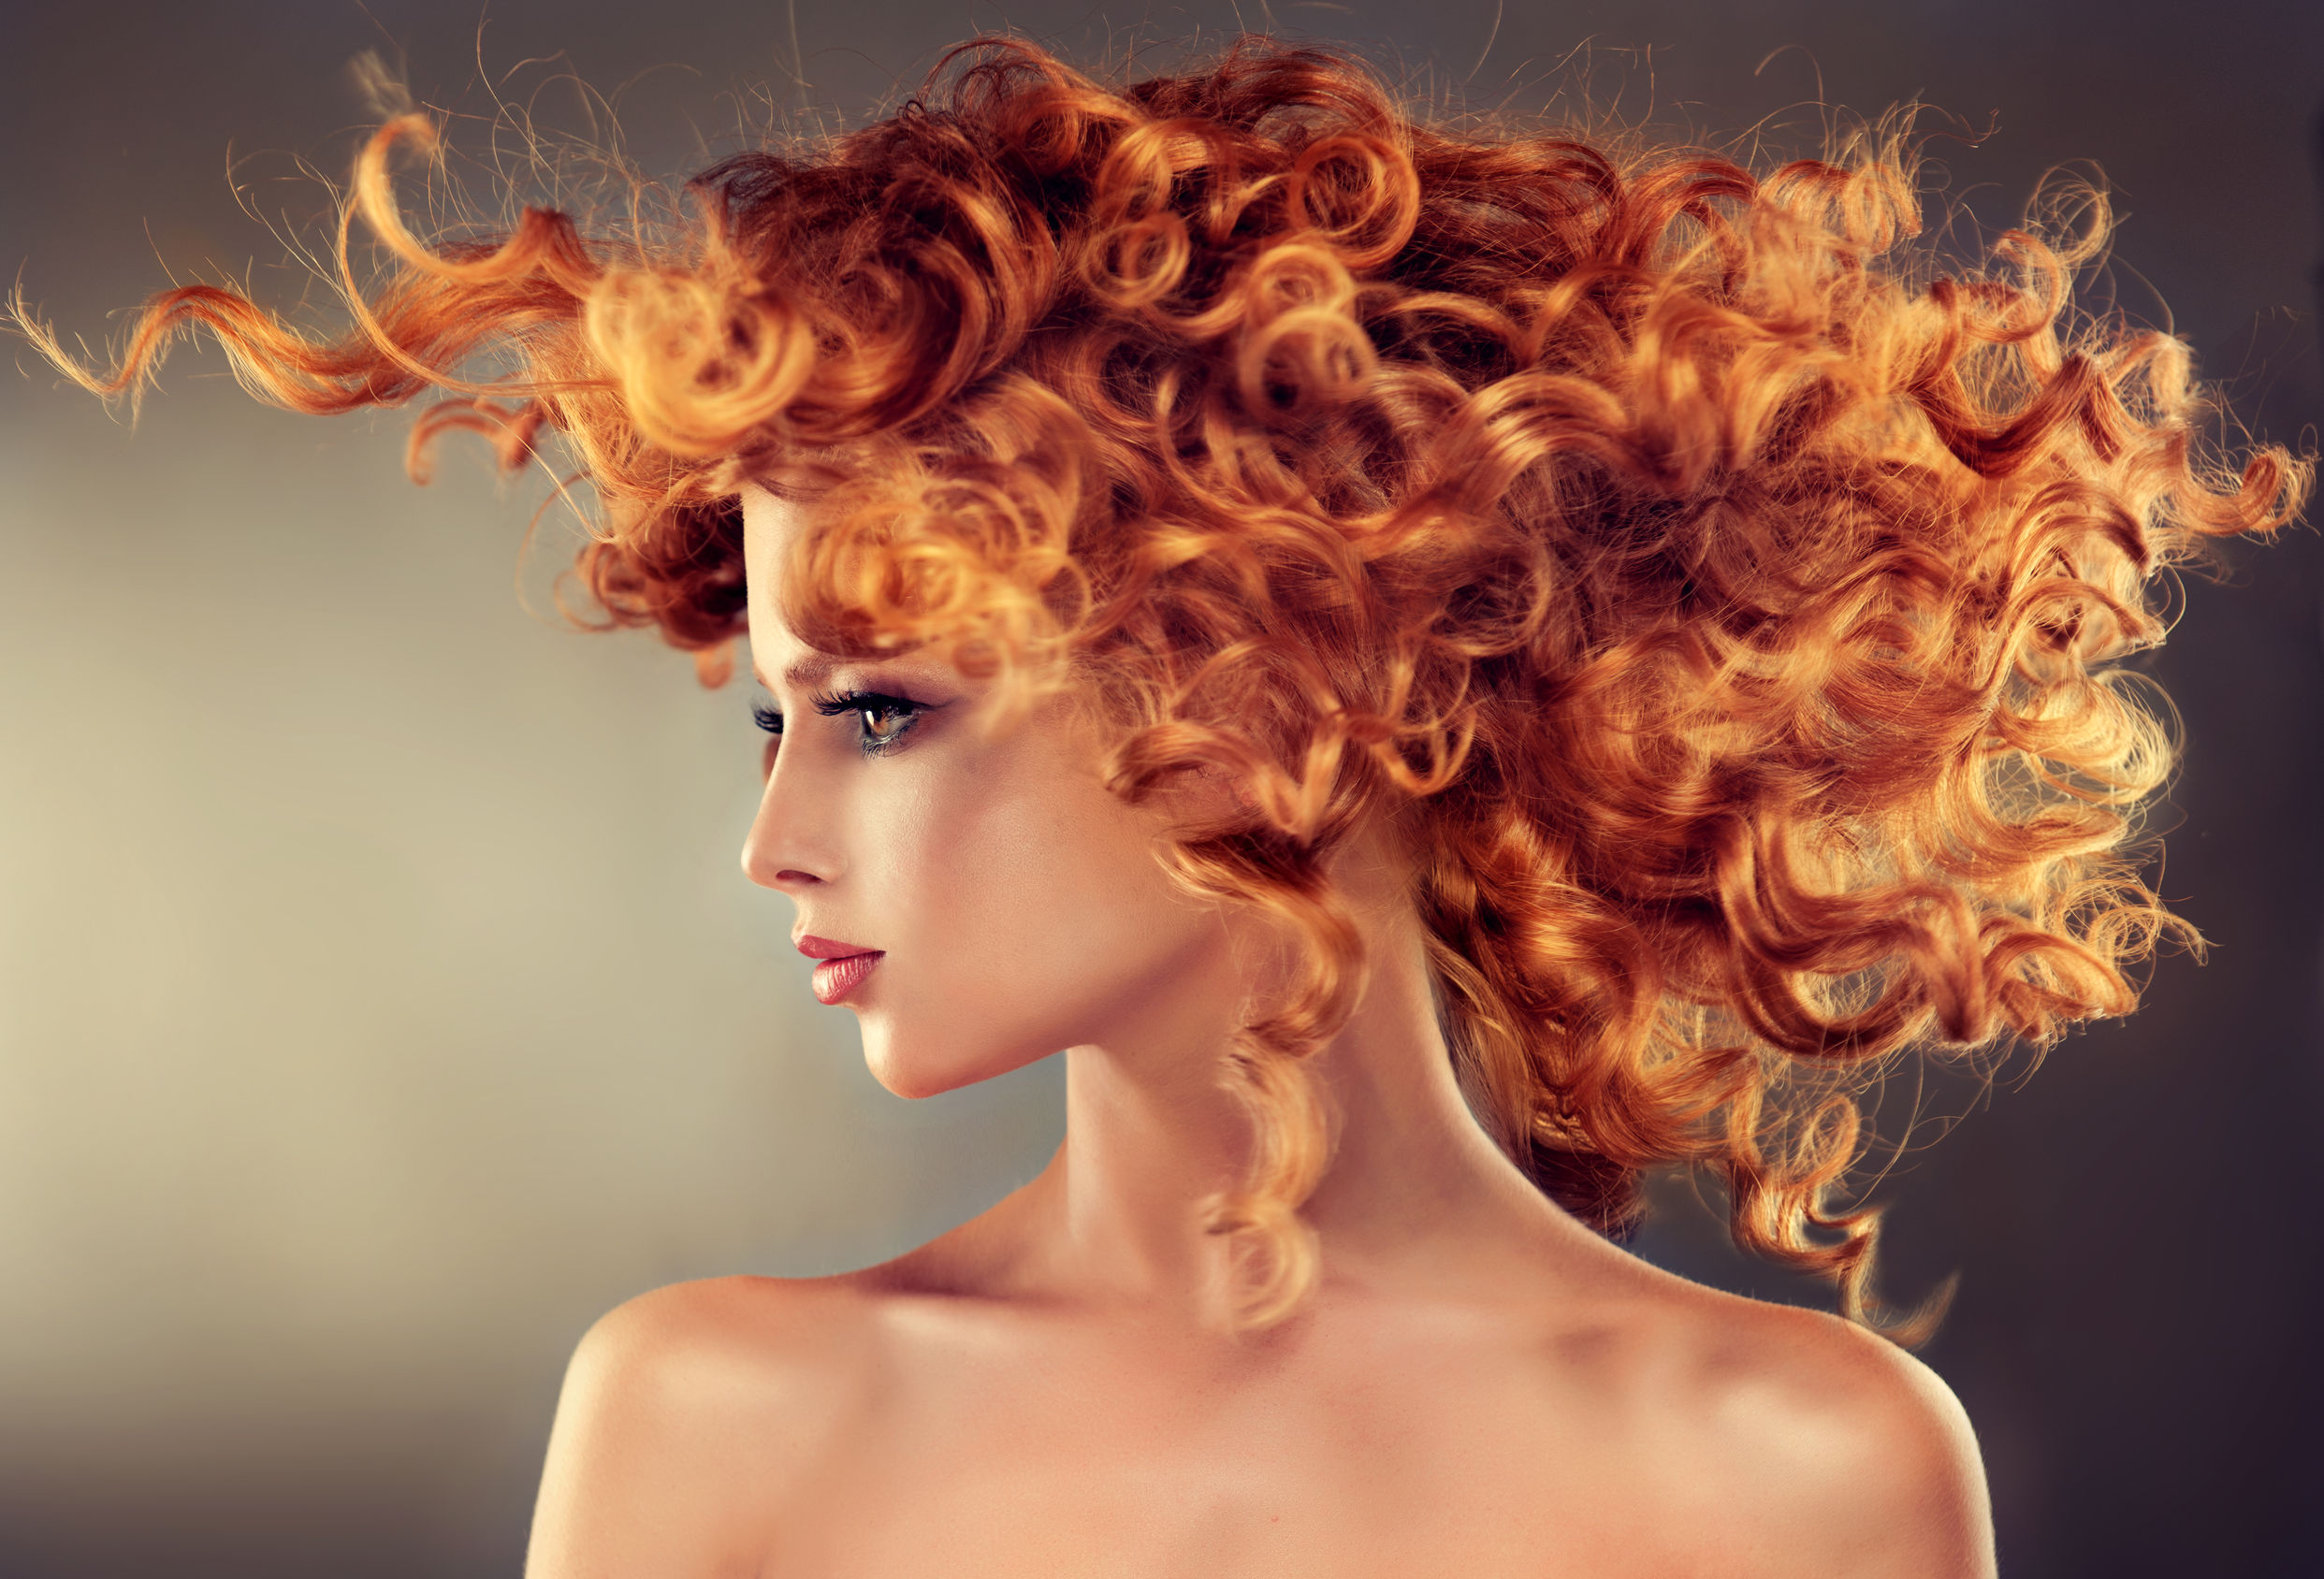 3 Surprising Ways to Curl Your Hair Without Heat Damage!